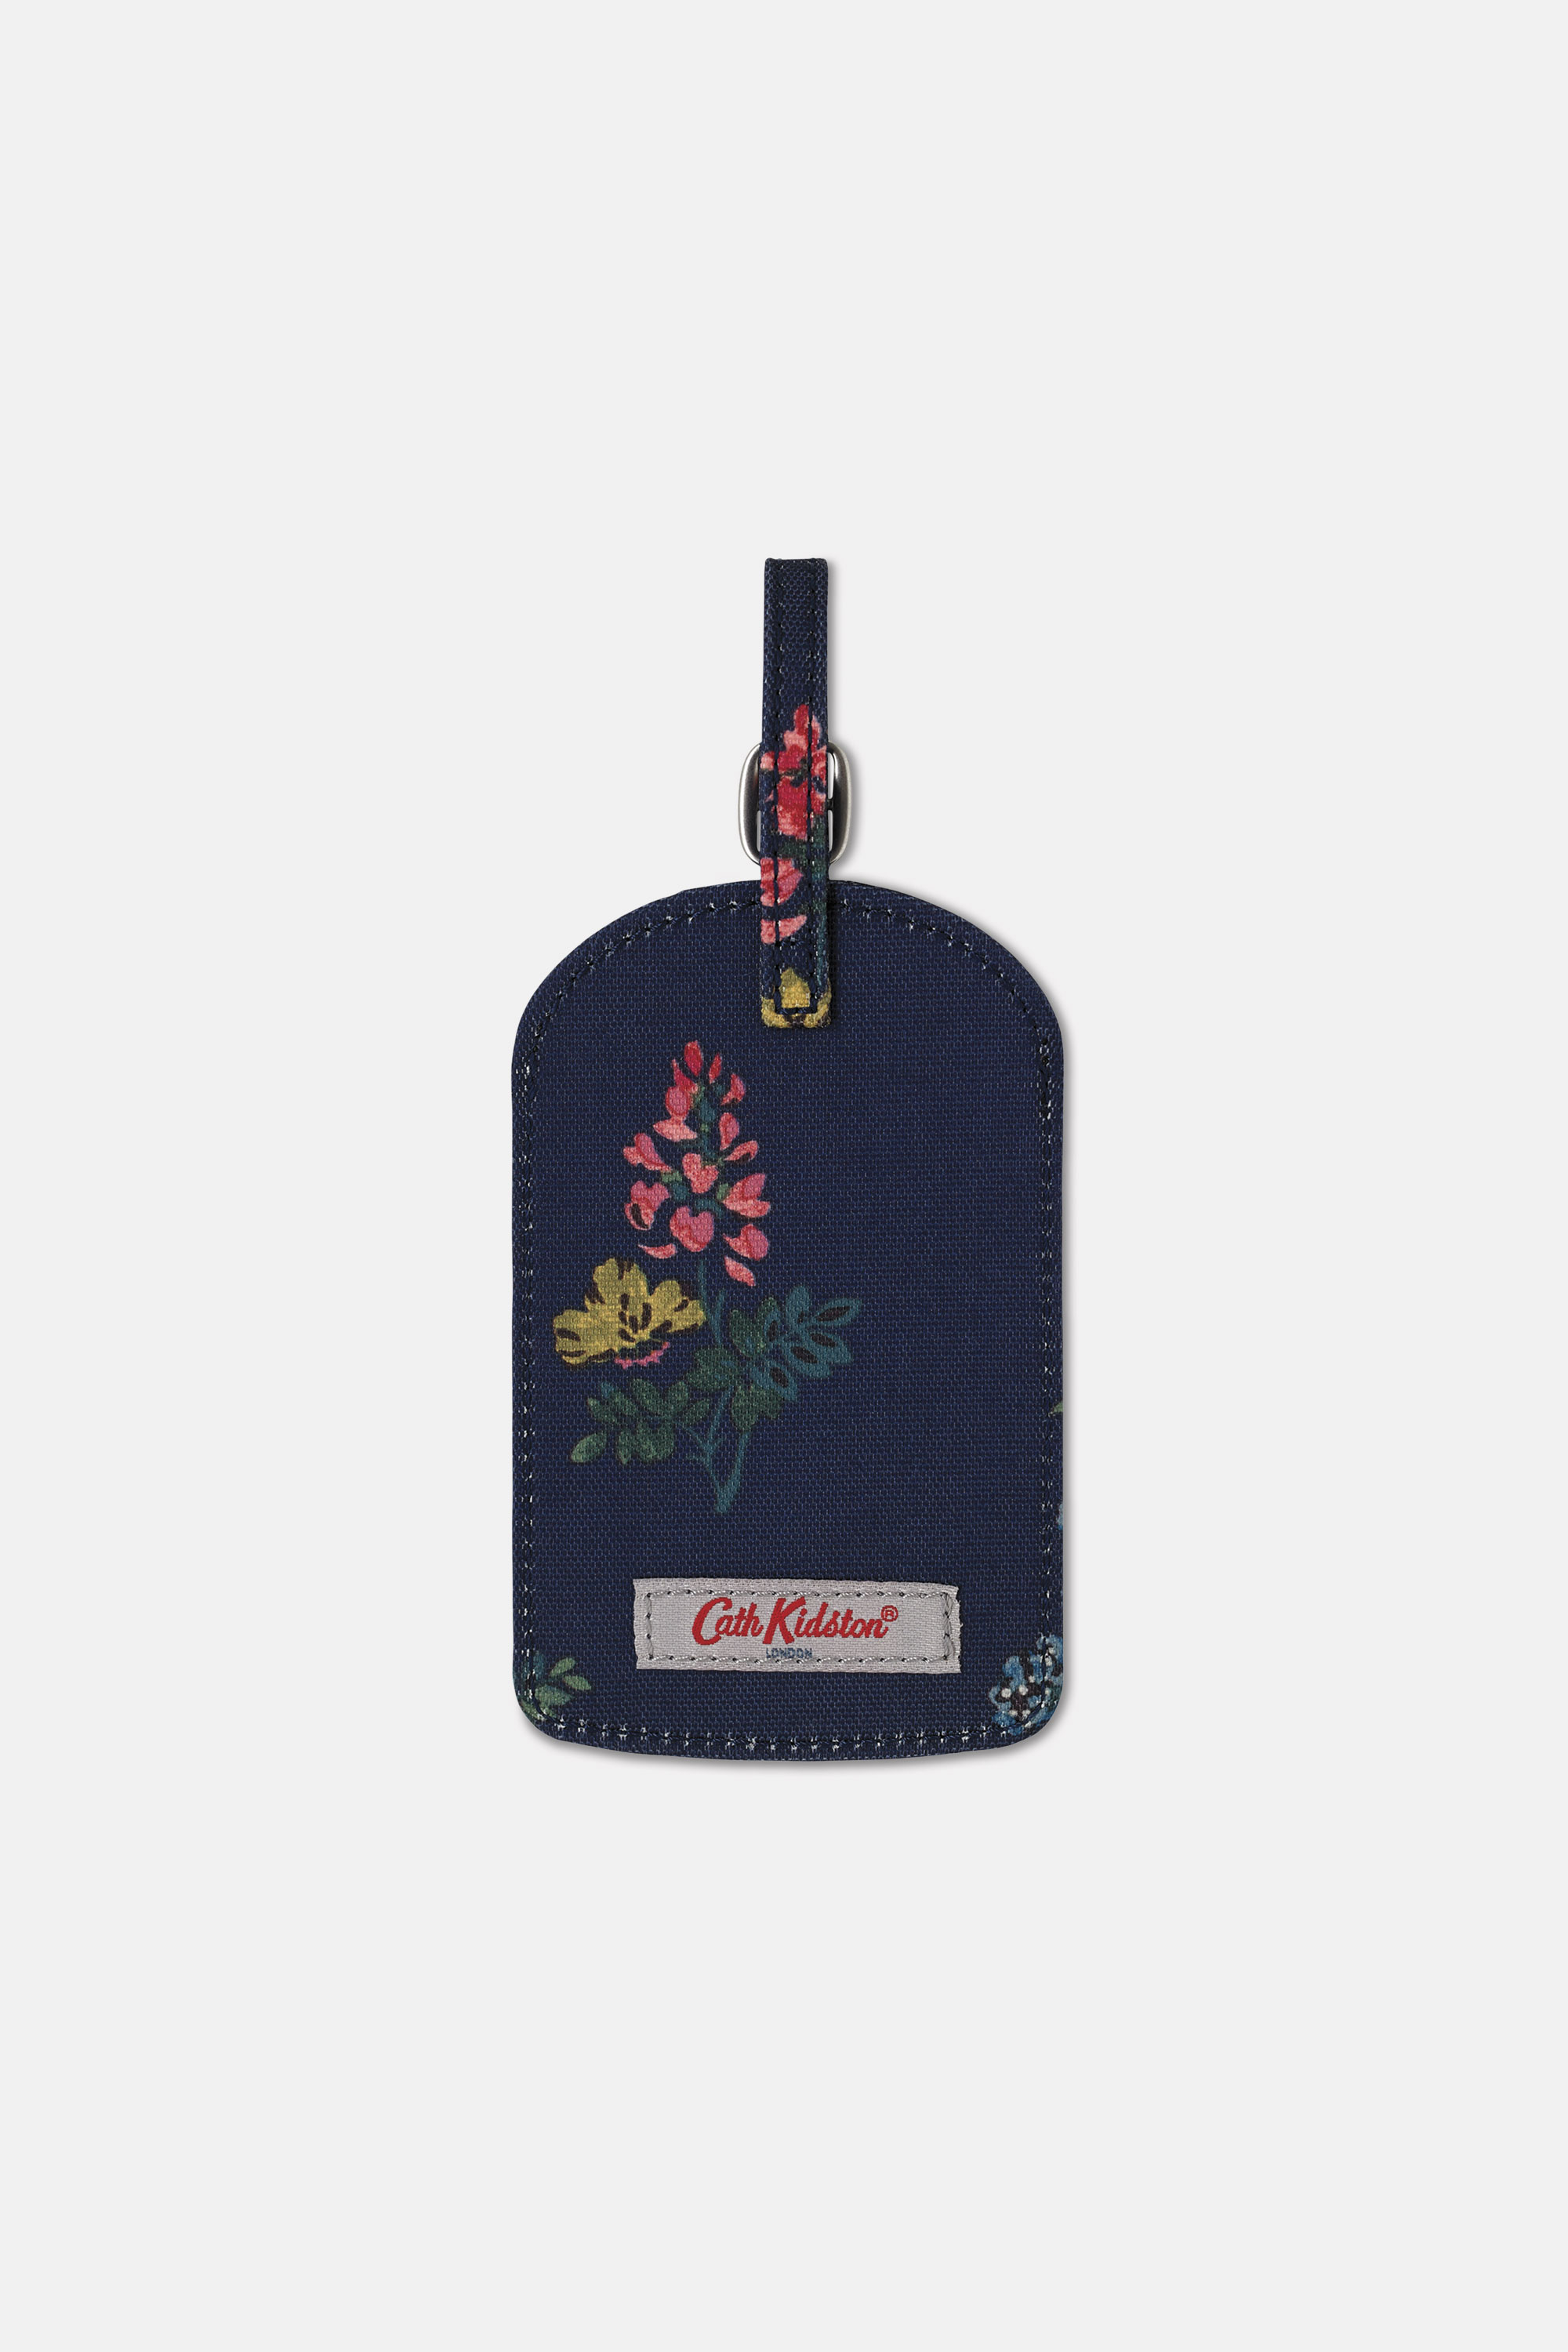 Cath Kidston Twilight Sprig Luggage Tag in Navy, 100% Polyester